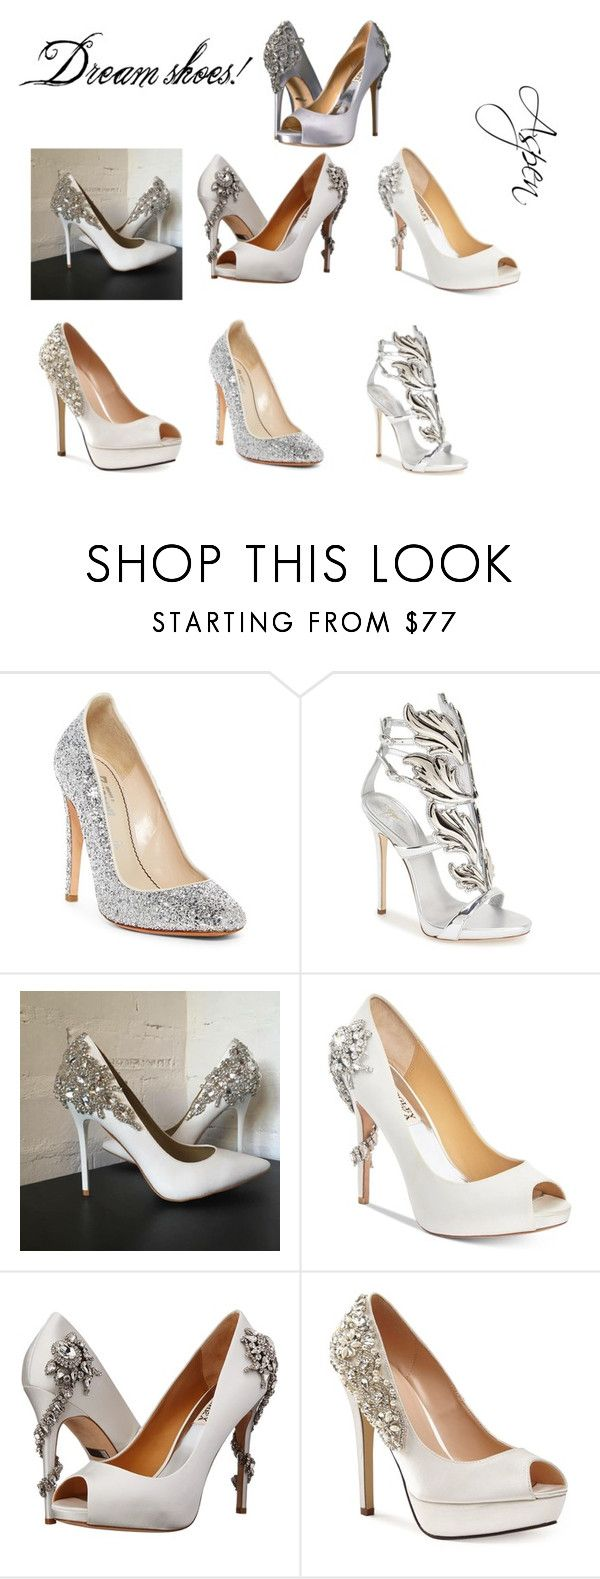 """""""My Dream Shoes"""" by aspen-arent on Polyvore featuring Jerome C. Rousseau, Giuseppe Zanotti, Badgley Mischka and Pink Paradox London"""